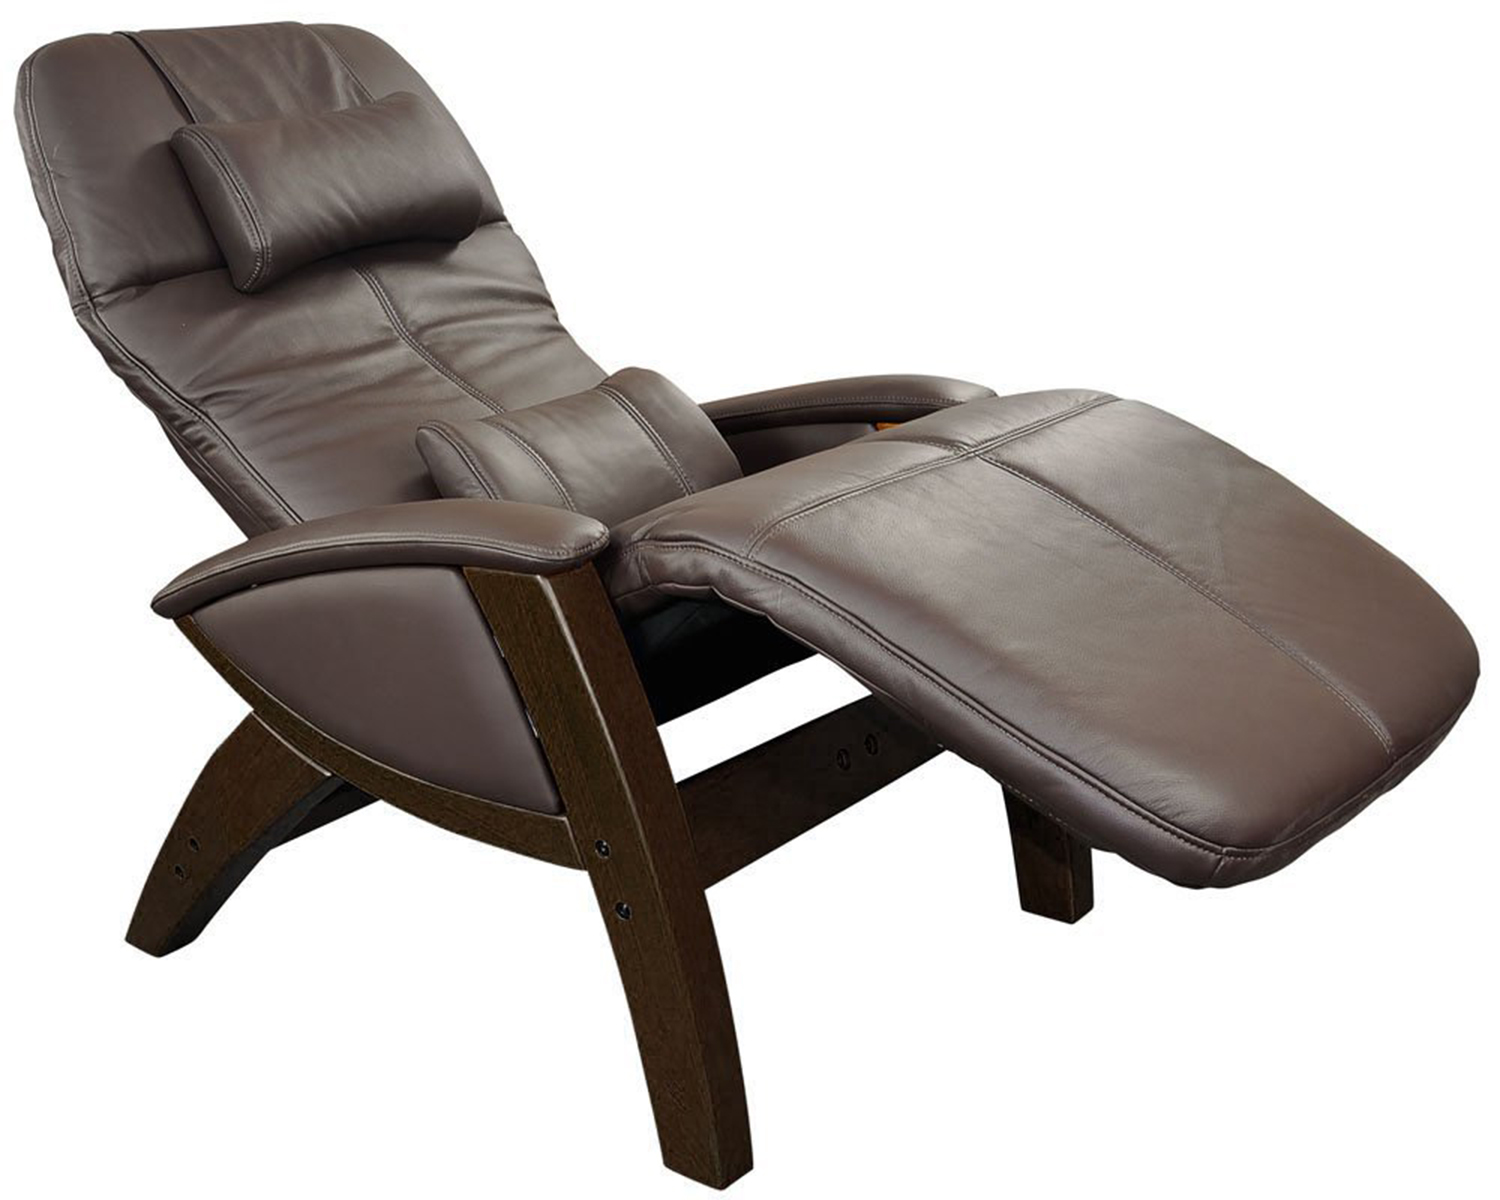 Svago Chair Svago Sv410 Benessere Dual Power Zero Gravity Recliner